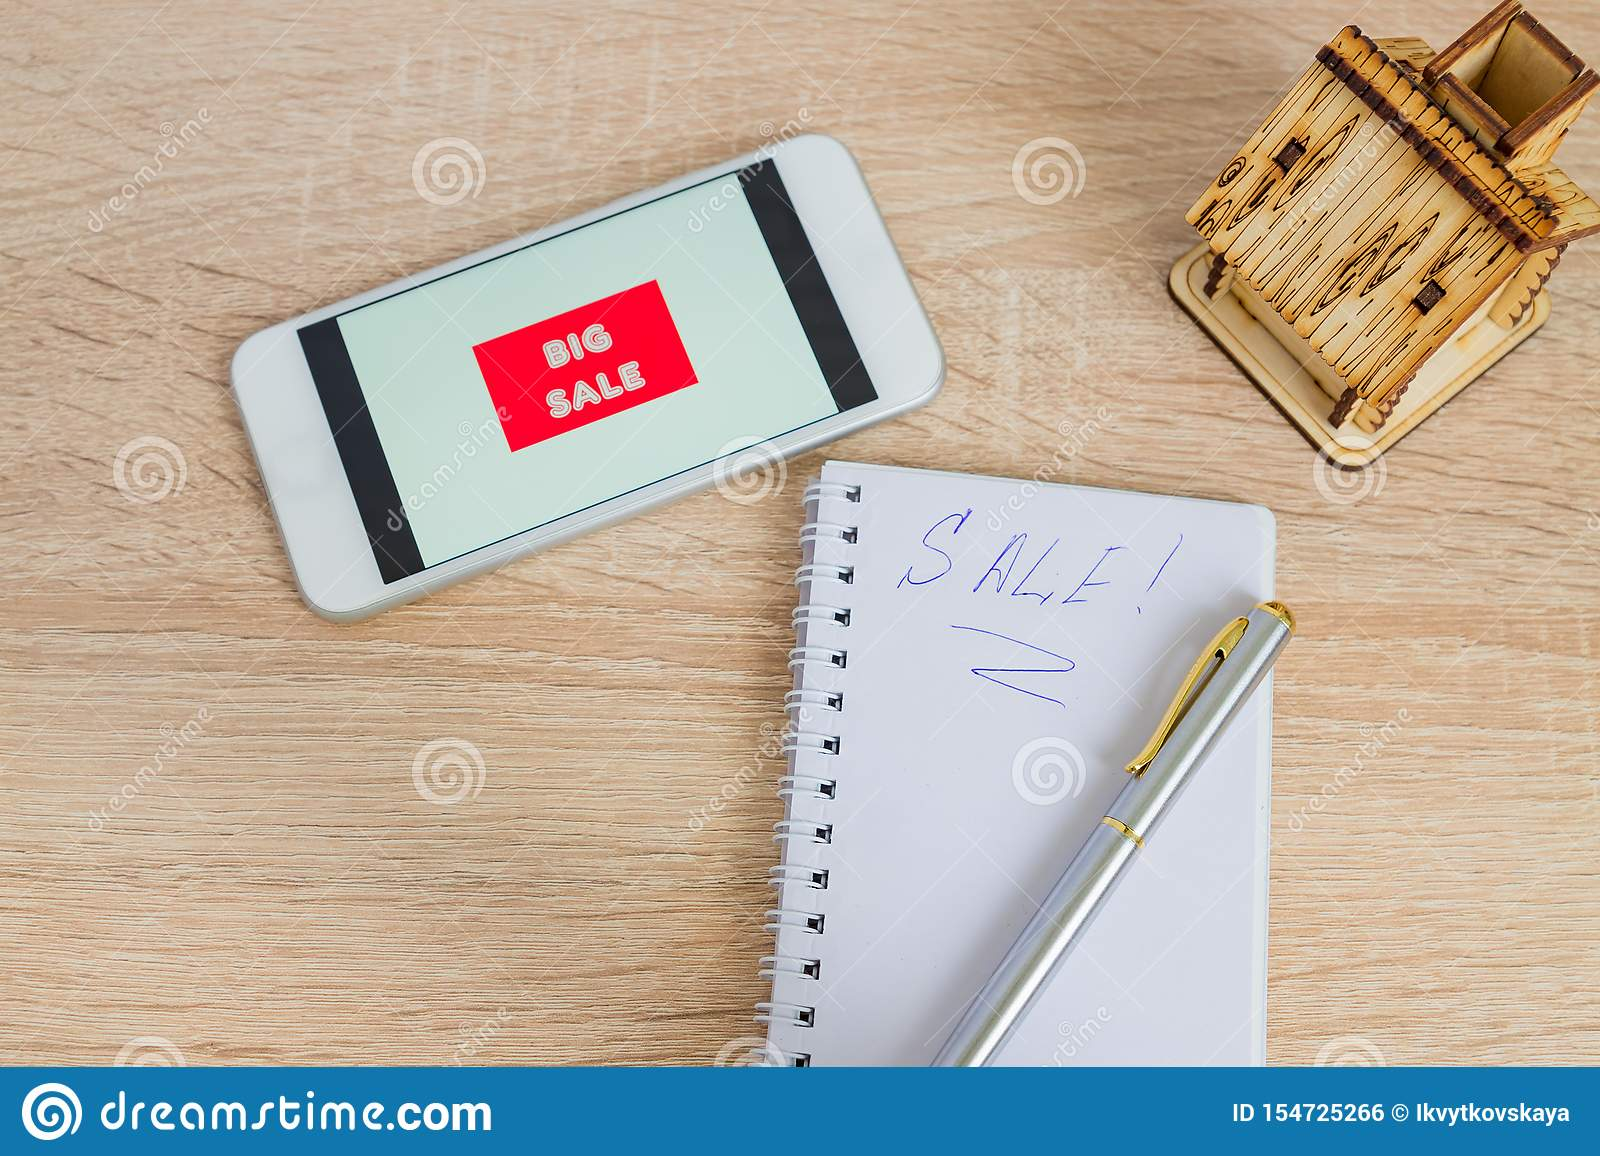 Top View Of Office Desk With White Smartphone With Sale Text Note And Small Wooden House Technology Business Online Shopping And Stock Photo Image Of Commercial Housing 154725266